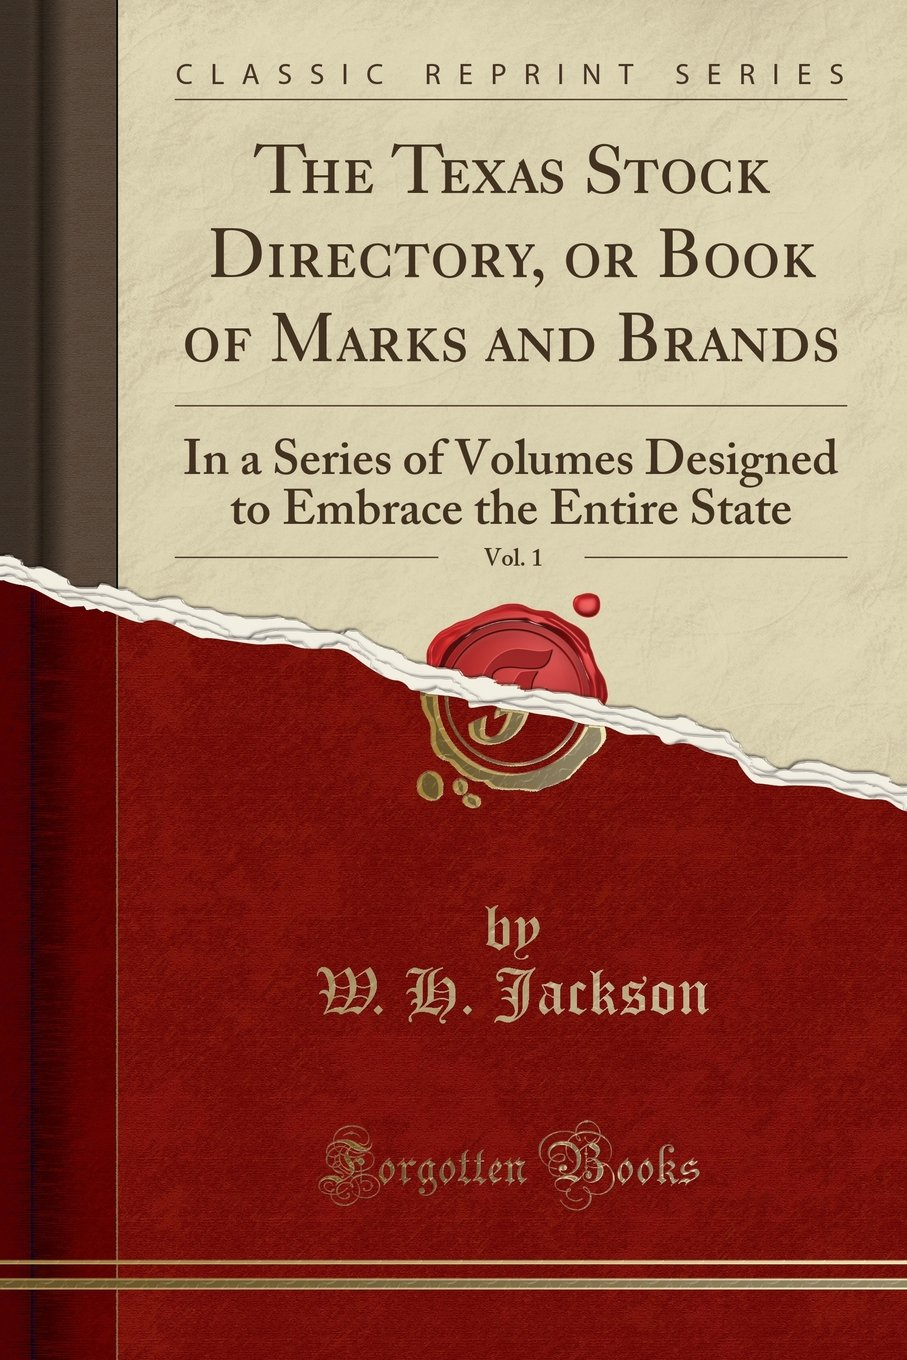 The Texas Stock Directory, or Book of Marks and Brands, Vol. 1: In a Series of Volumes Designed to Embrace the Entire State (Classic Reprint) PDF